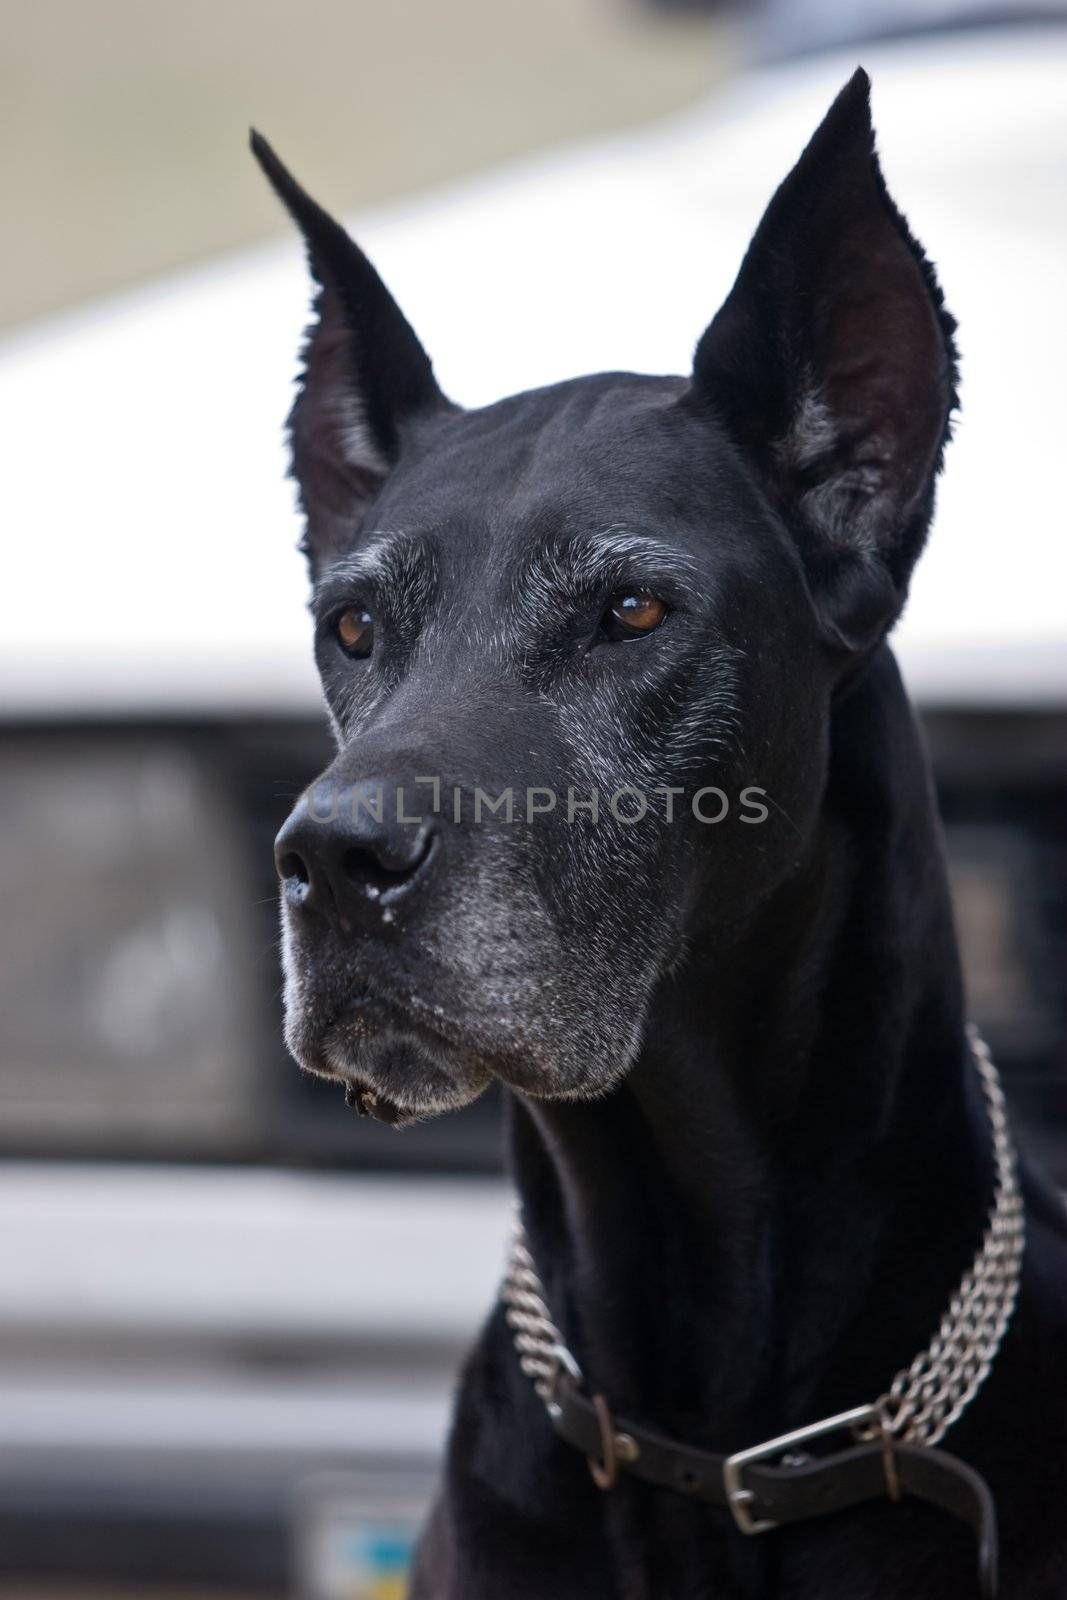 pets series: head of black dog with collar